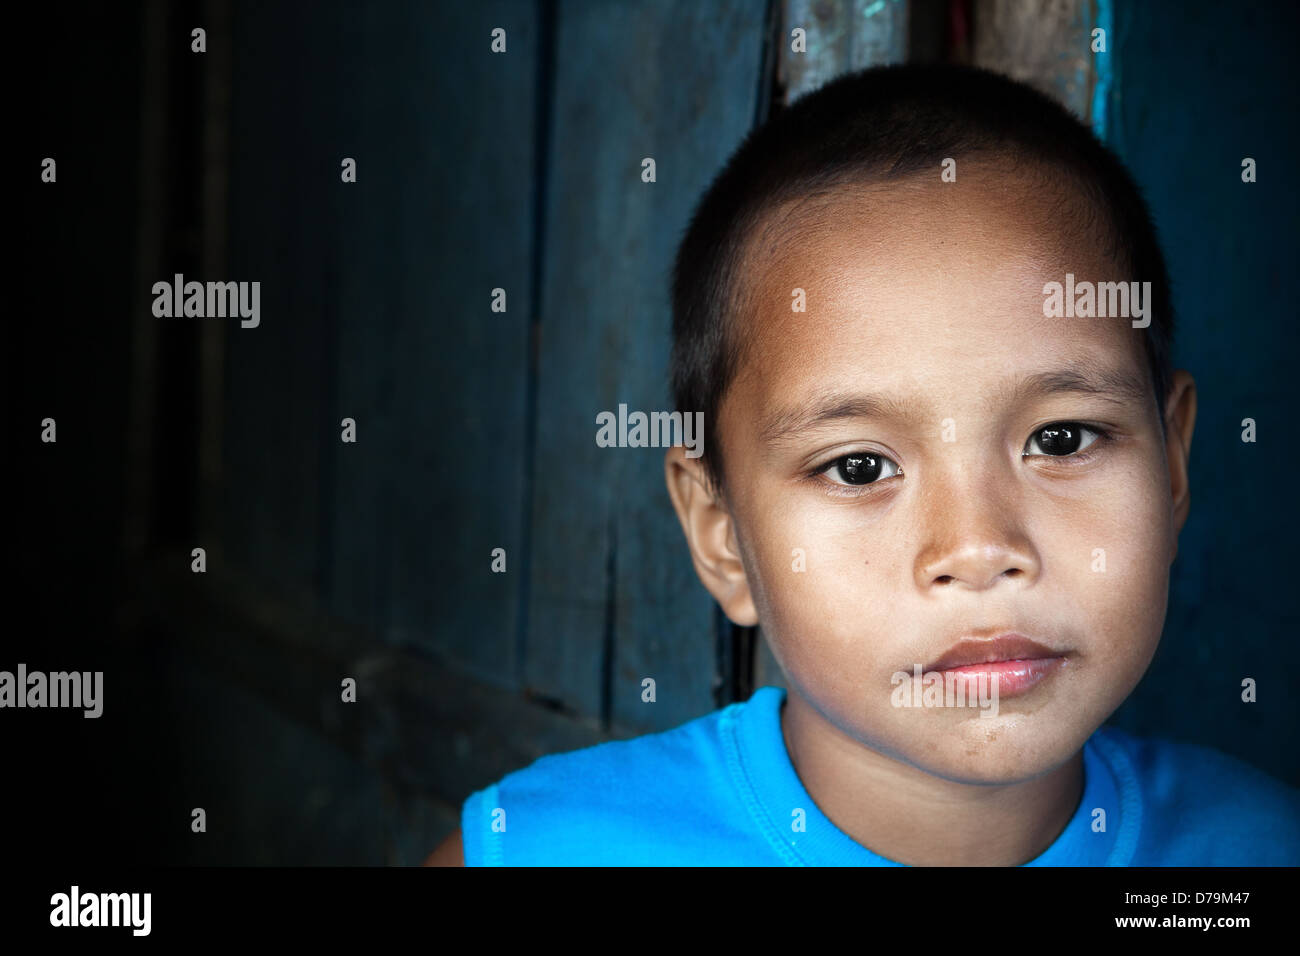 Portrait of an Asian child - Filipino boy by wall in natural light - Stock Image